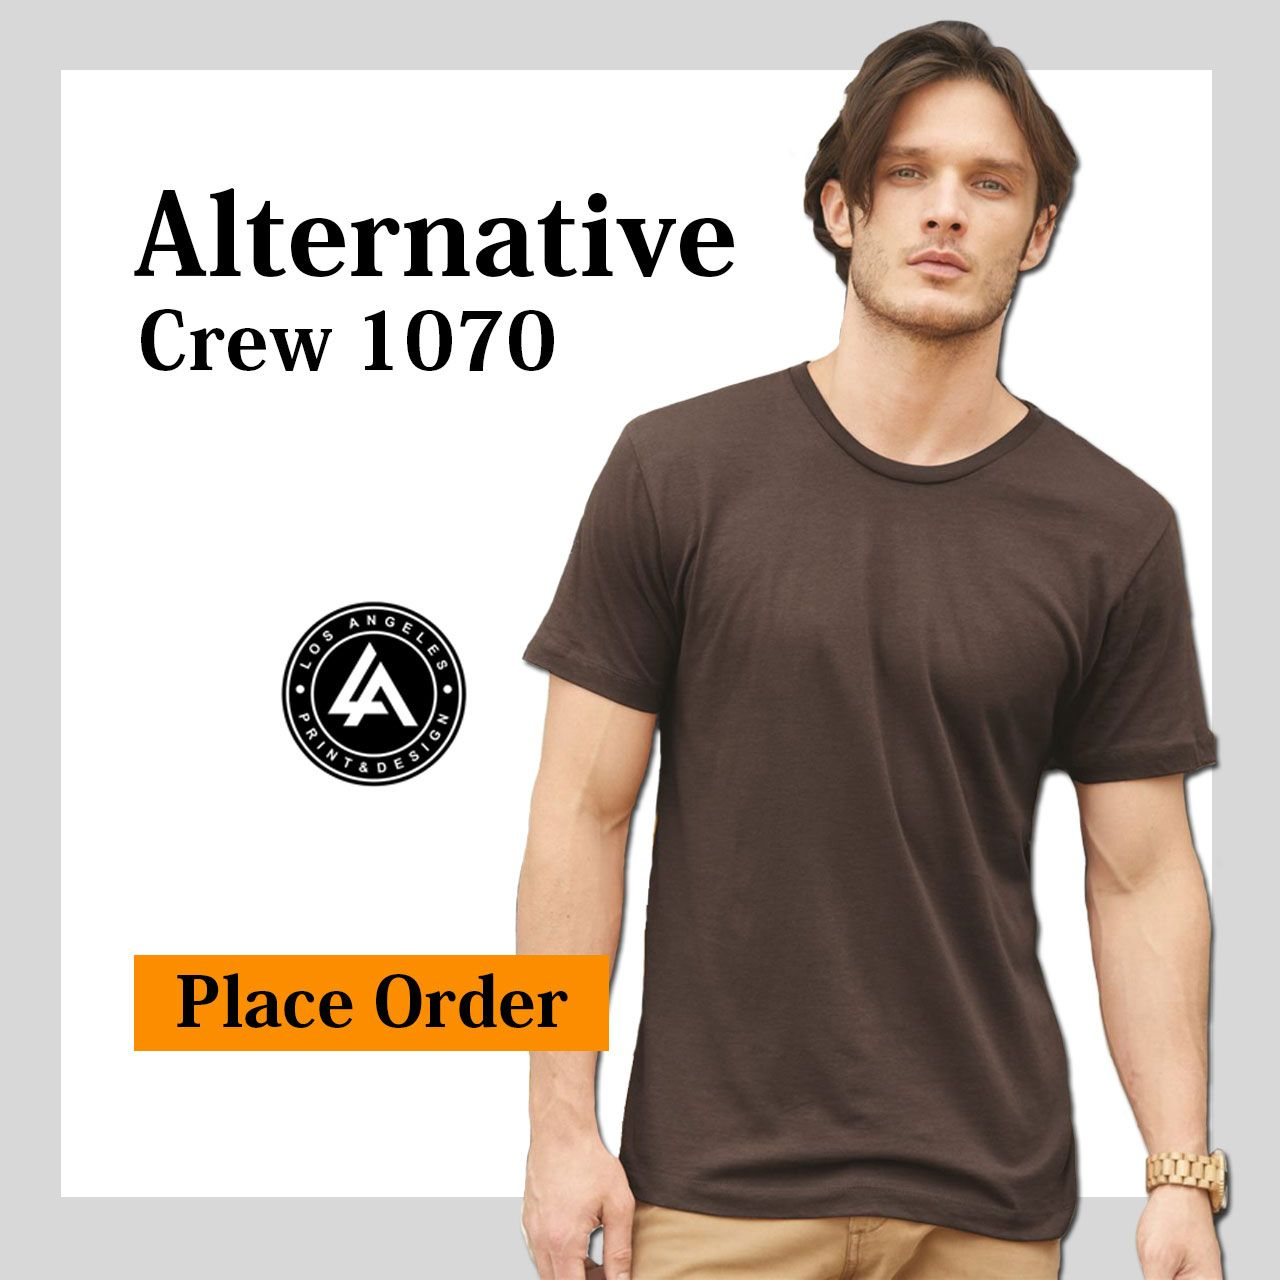 We Have The Top 5 Quality Blank T Shirts For Printing A High End T